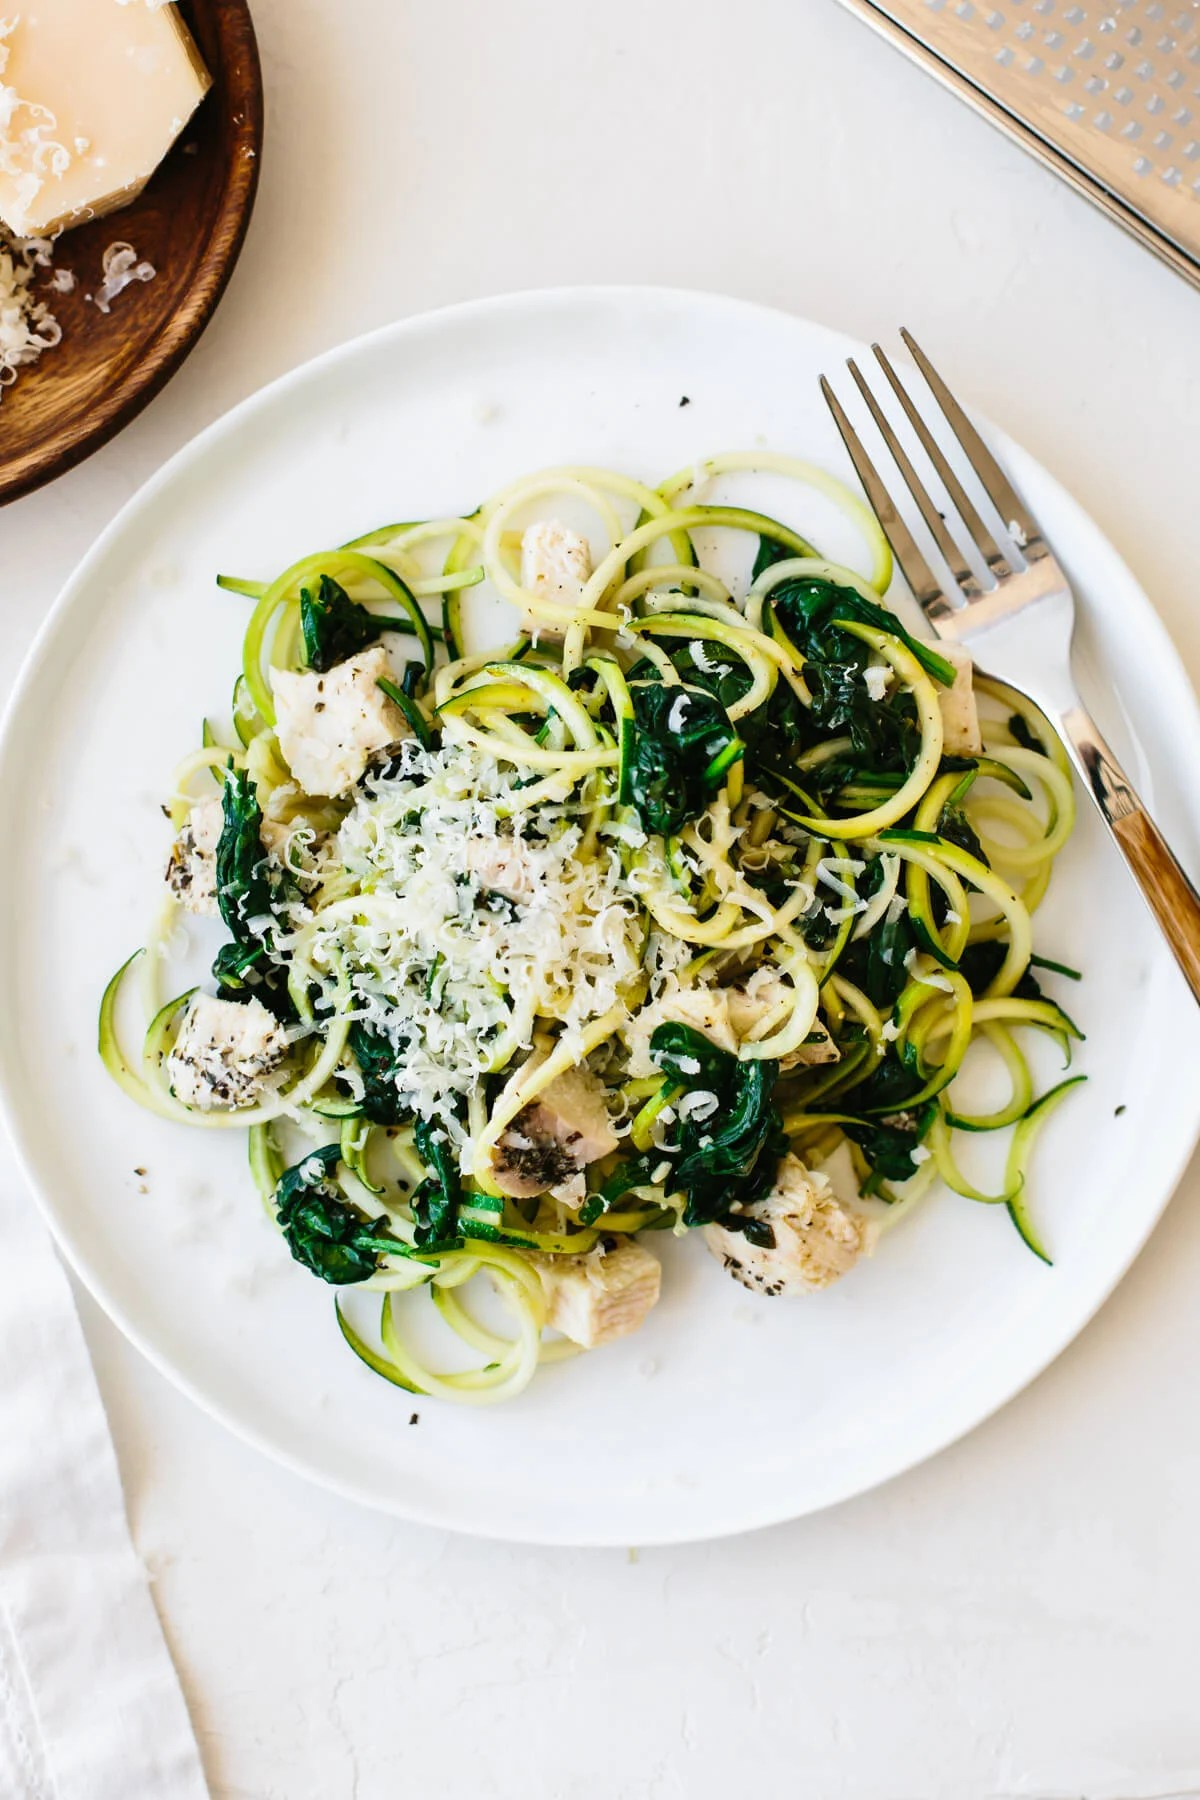 A plate of zucchini noodles with chunks of chicken, sauteed spinach and a sprinkle of parmesan.